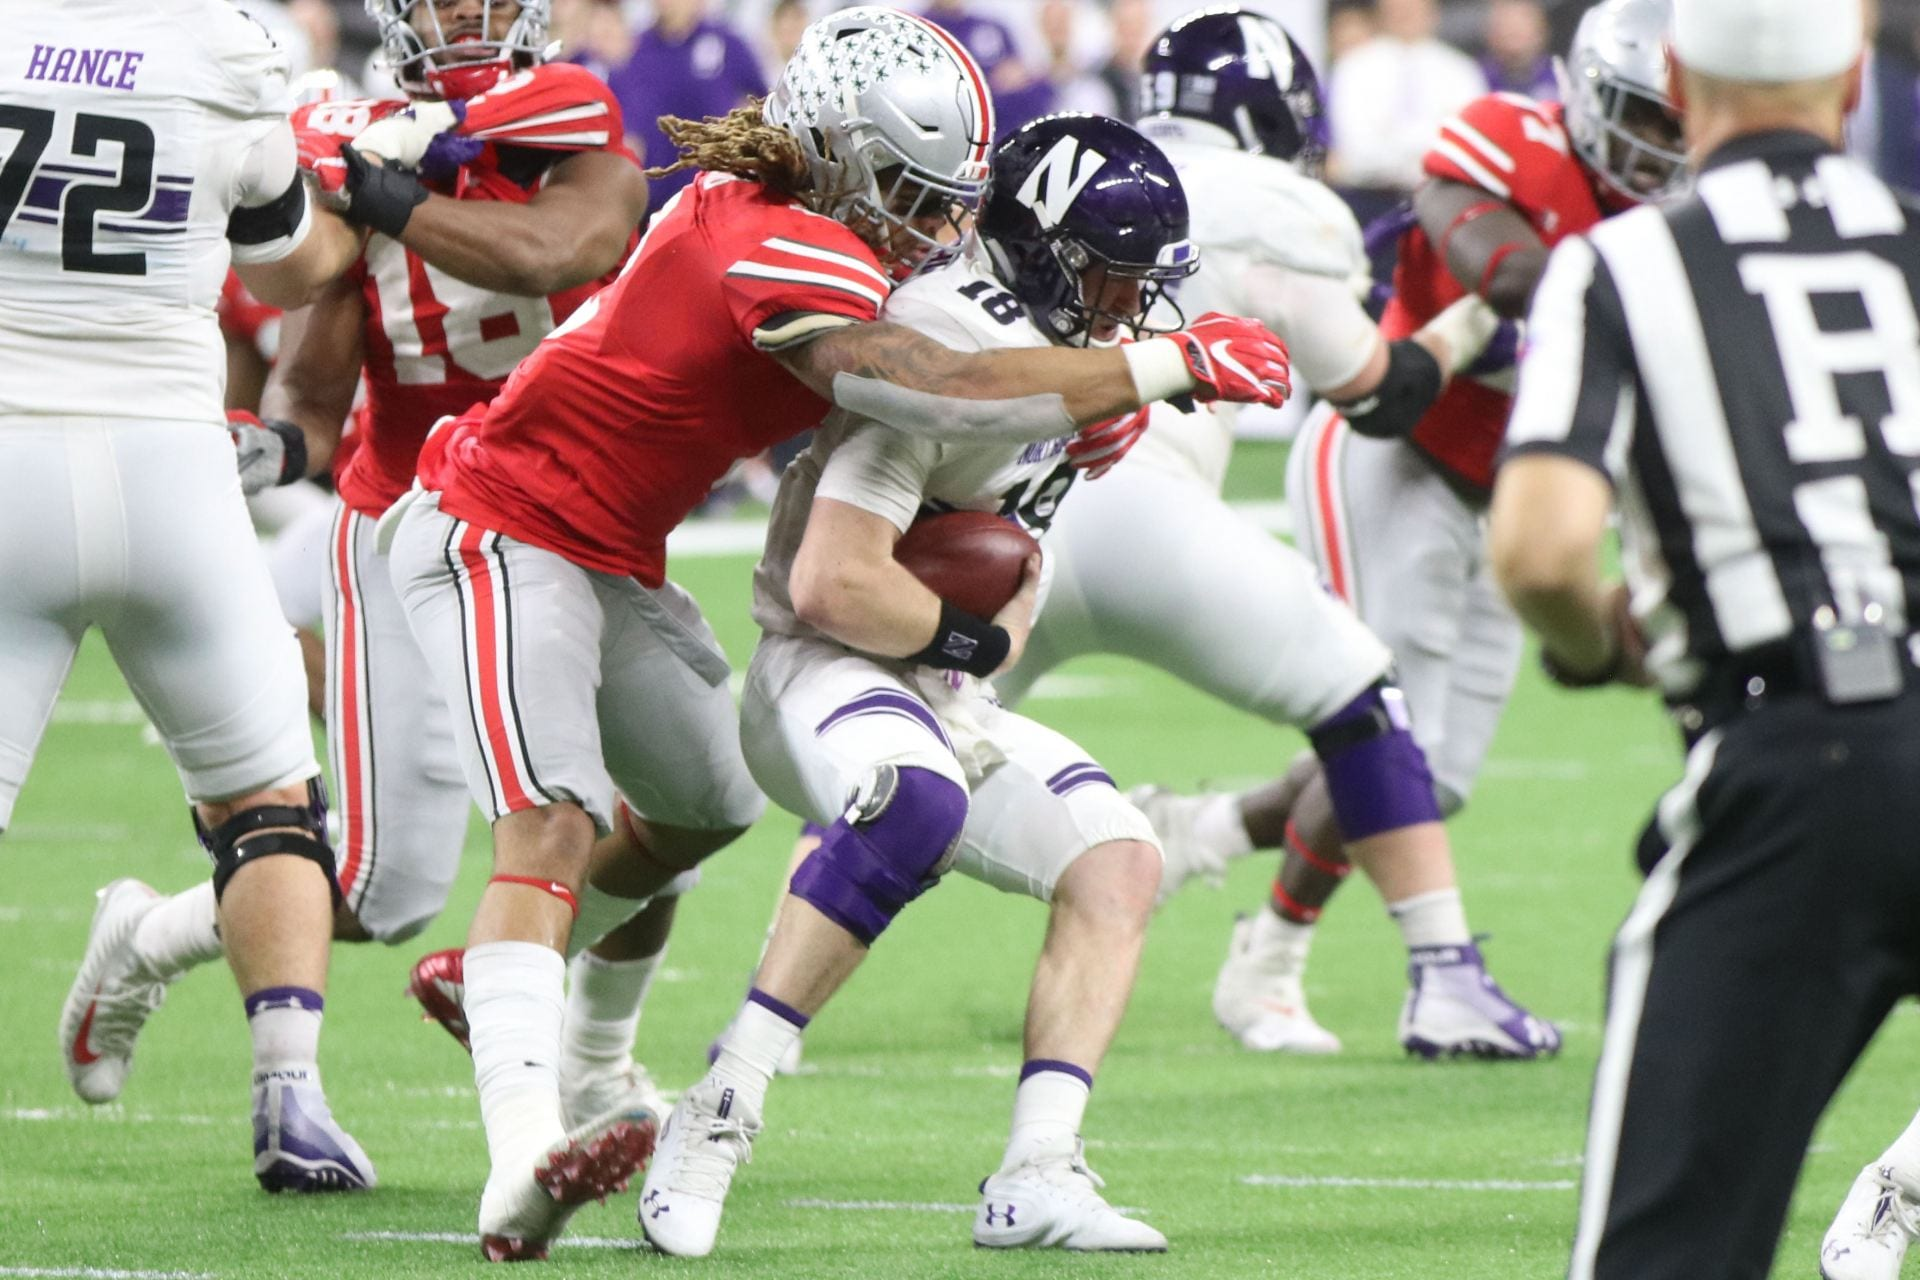 Football: Chase Young expected to lead Ohio State defense